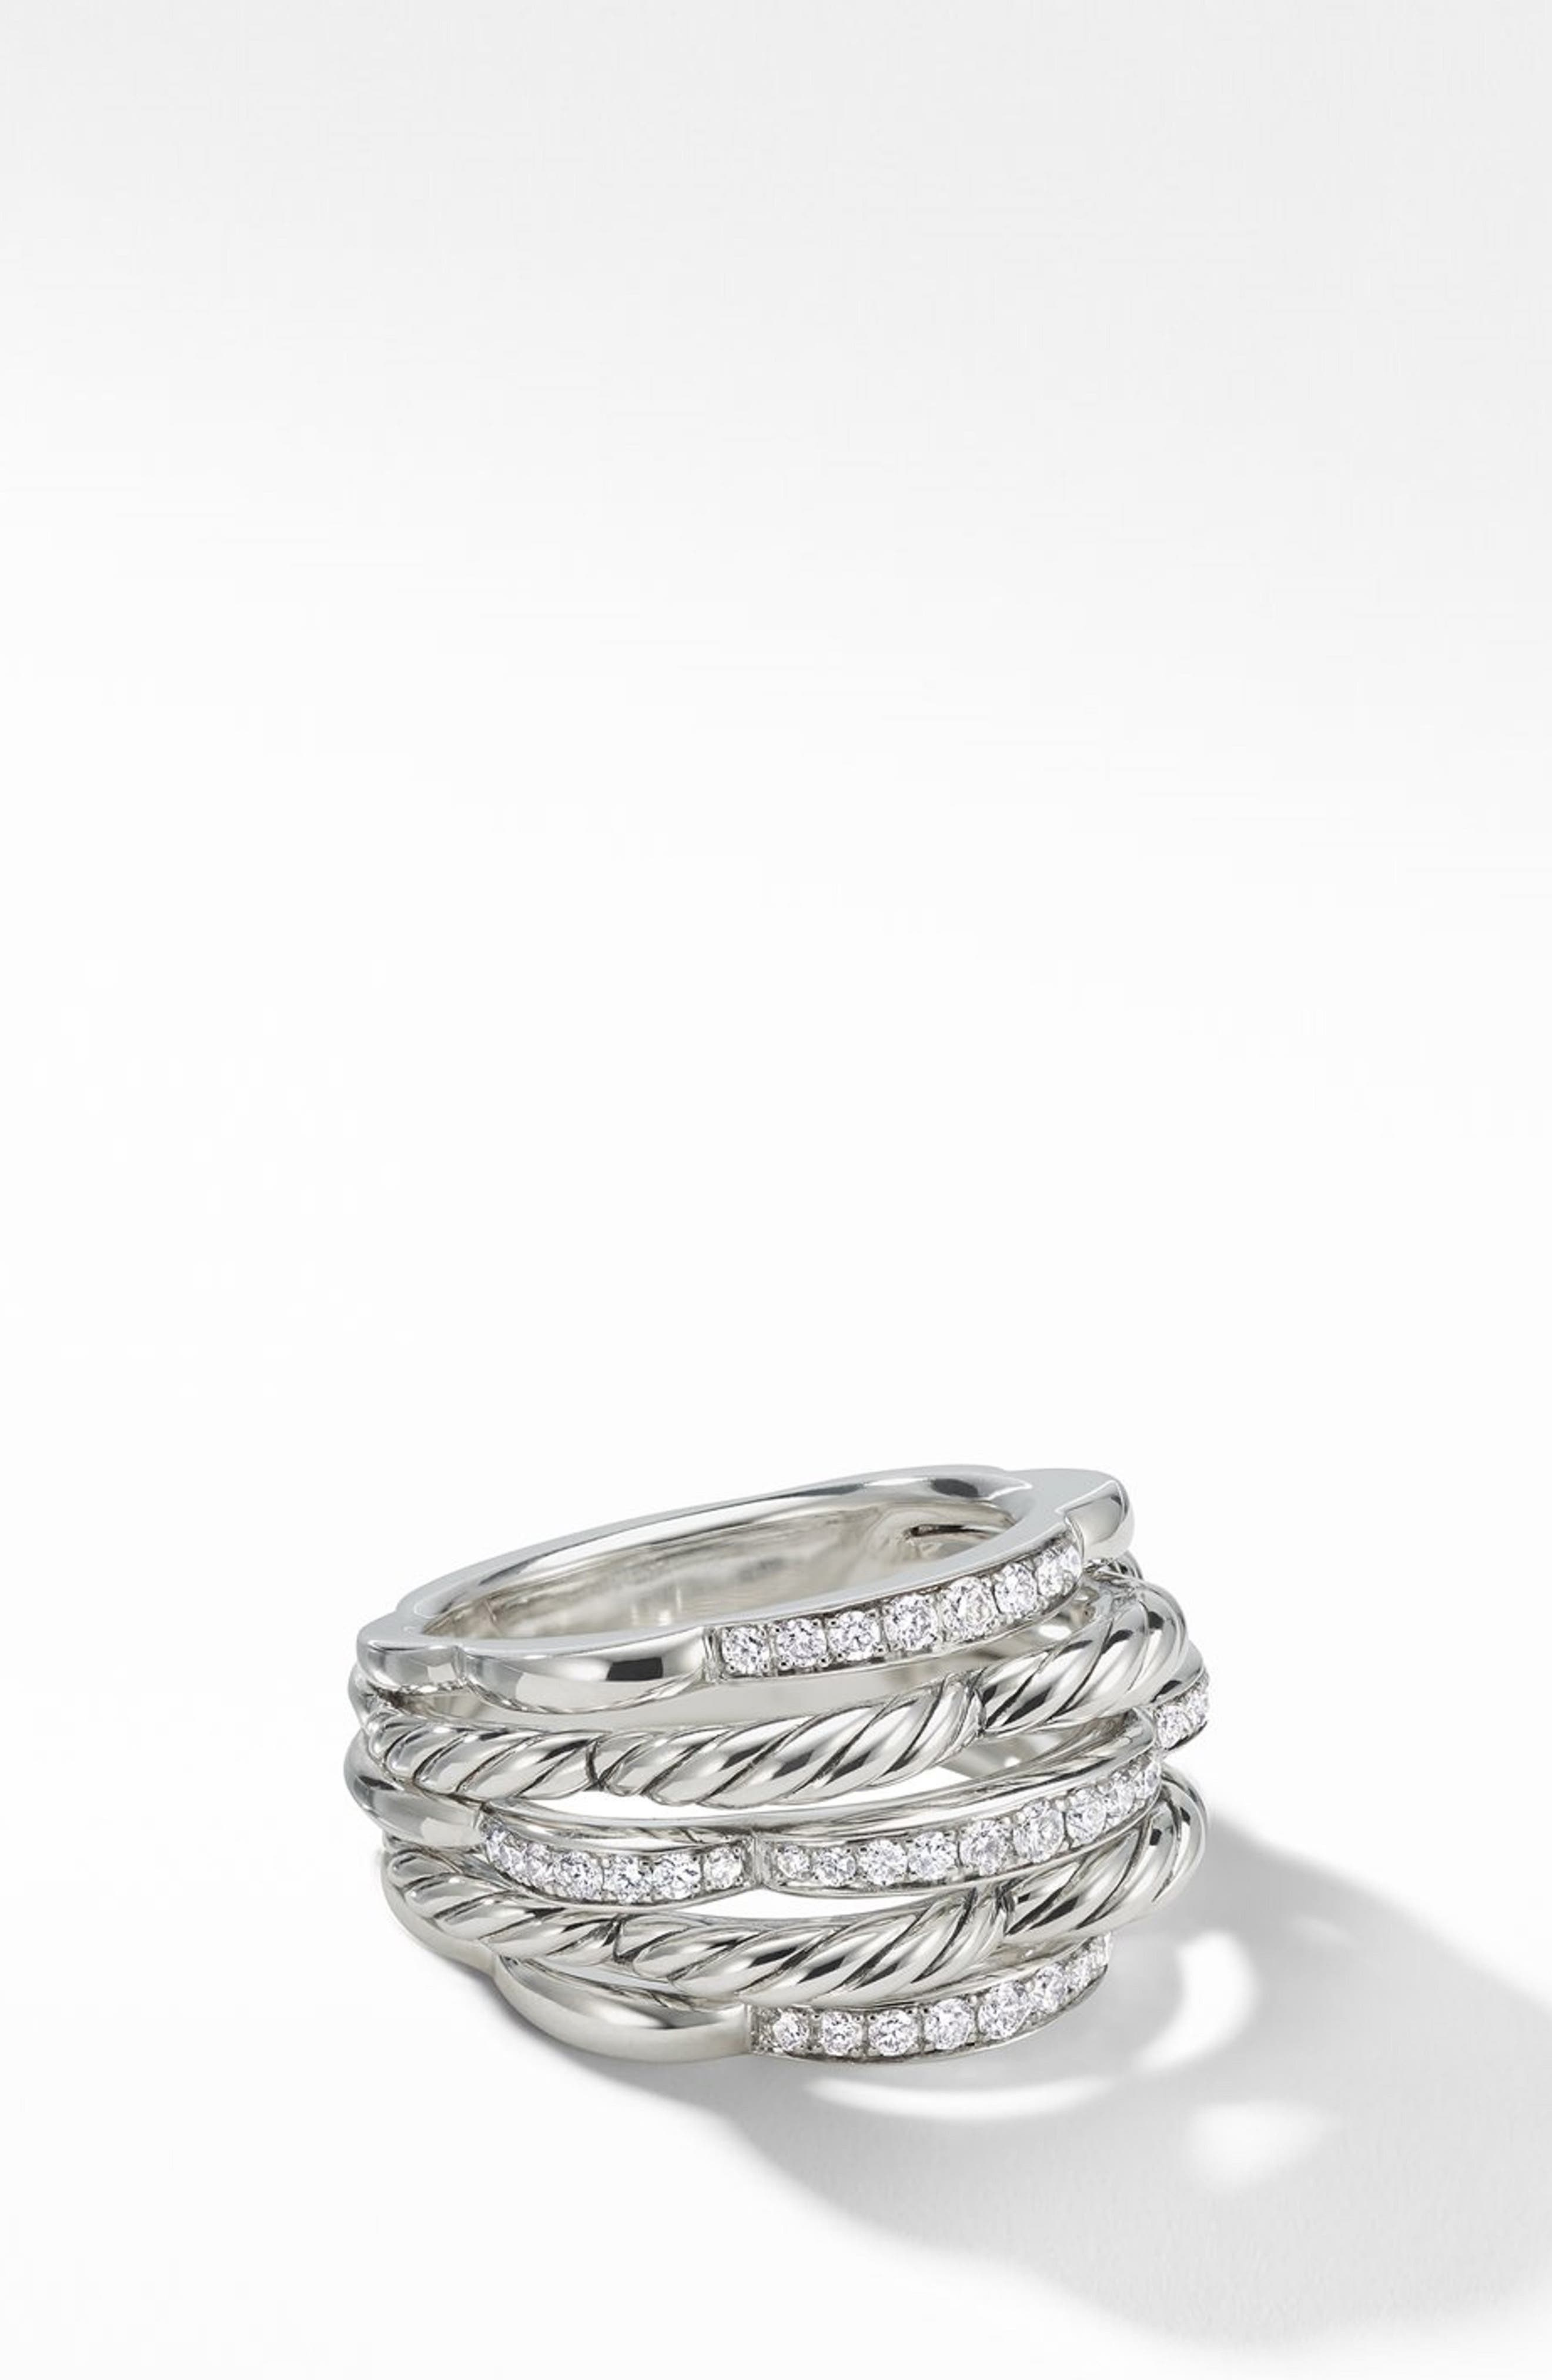 Tides Dome Ring with Diamonds,                             Main thumbnail 1, color,                             STERLING SILVER/ DIAMOND